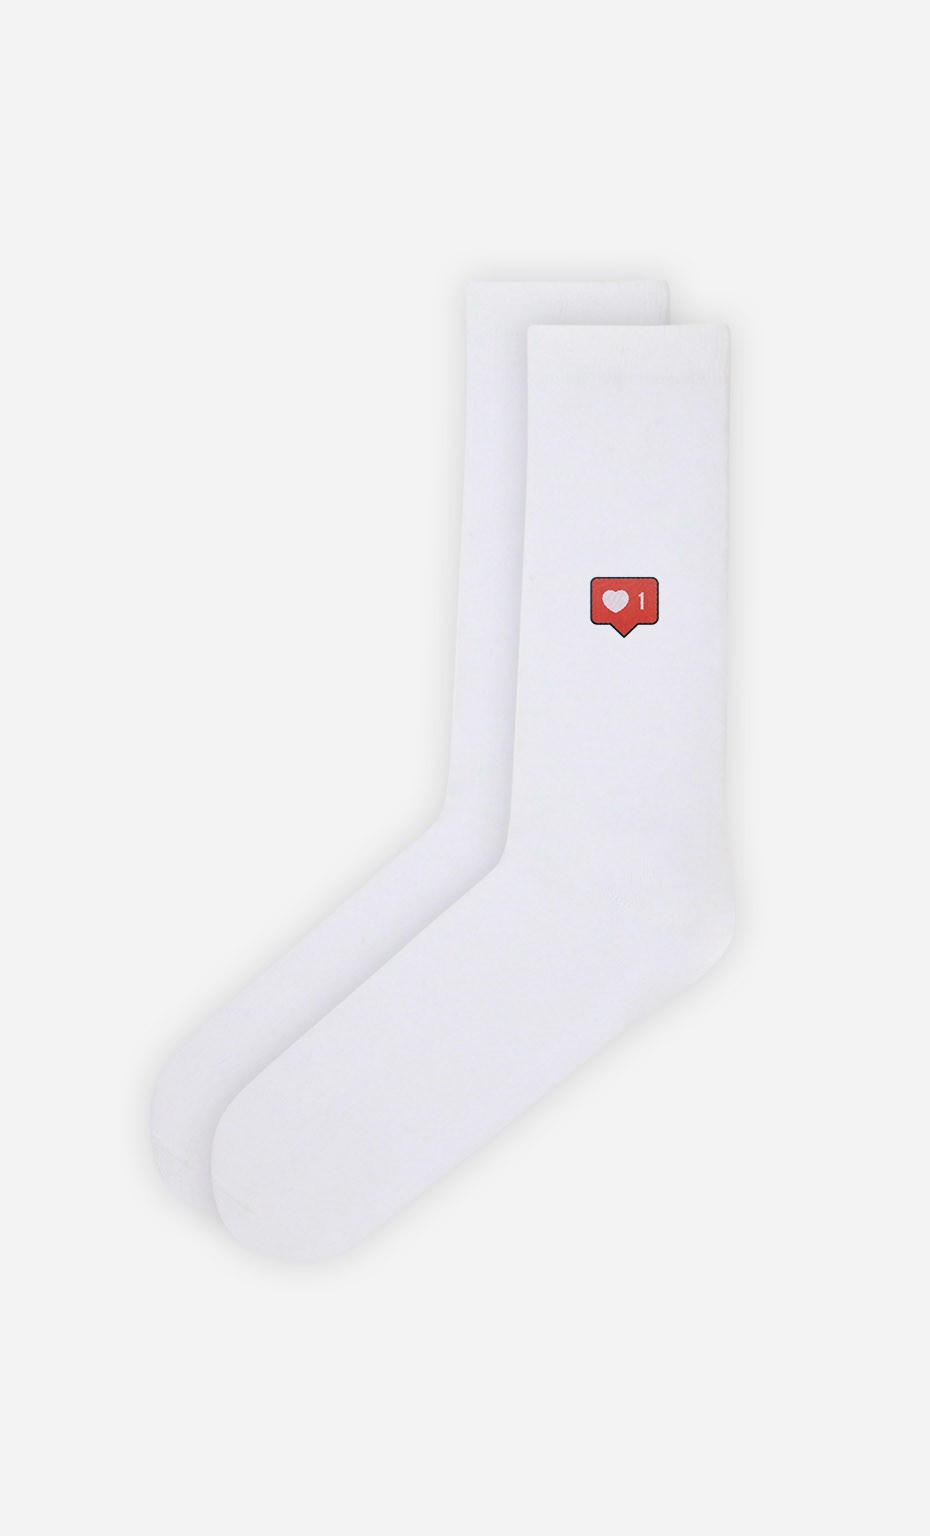 Chaussettes Blanches Instagram